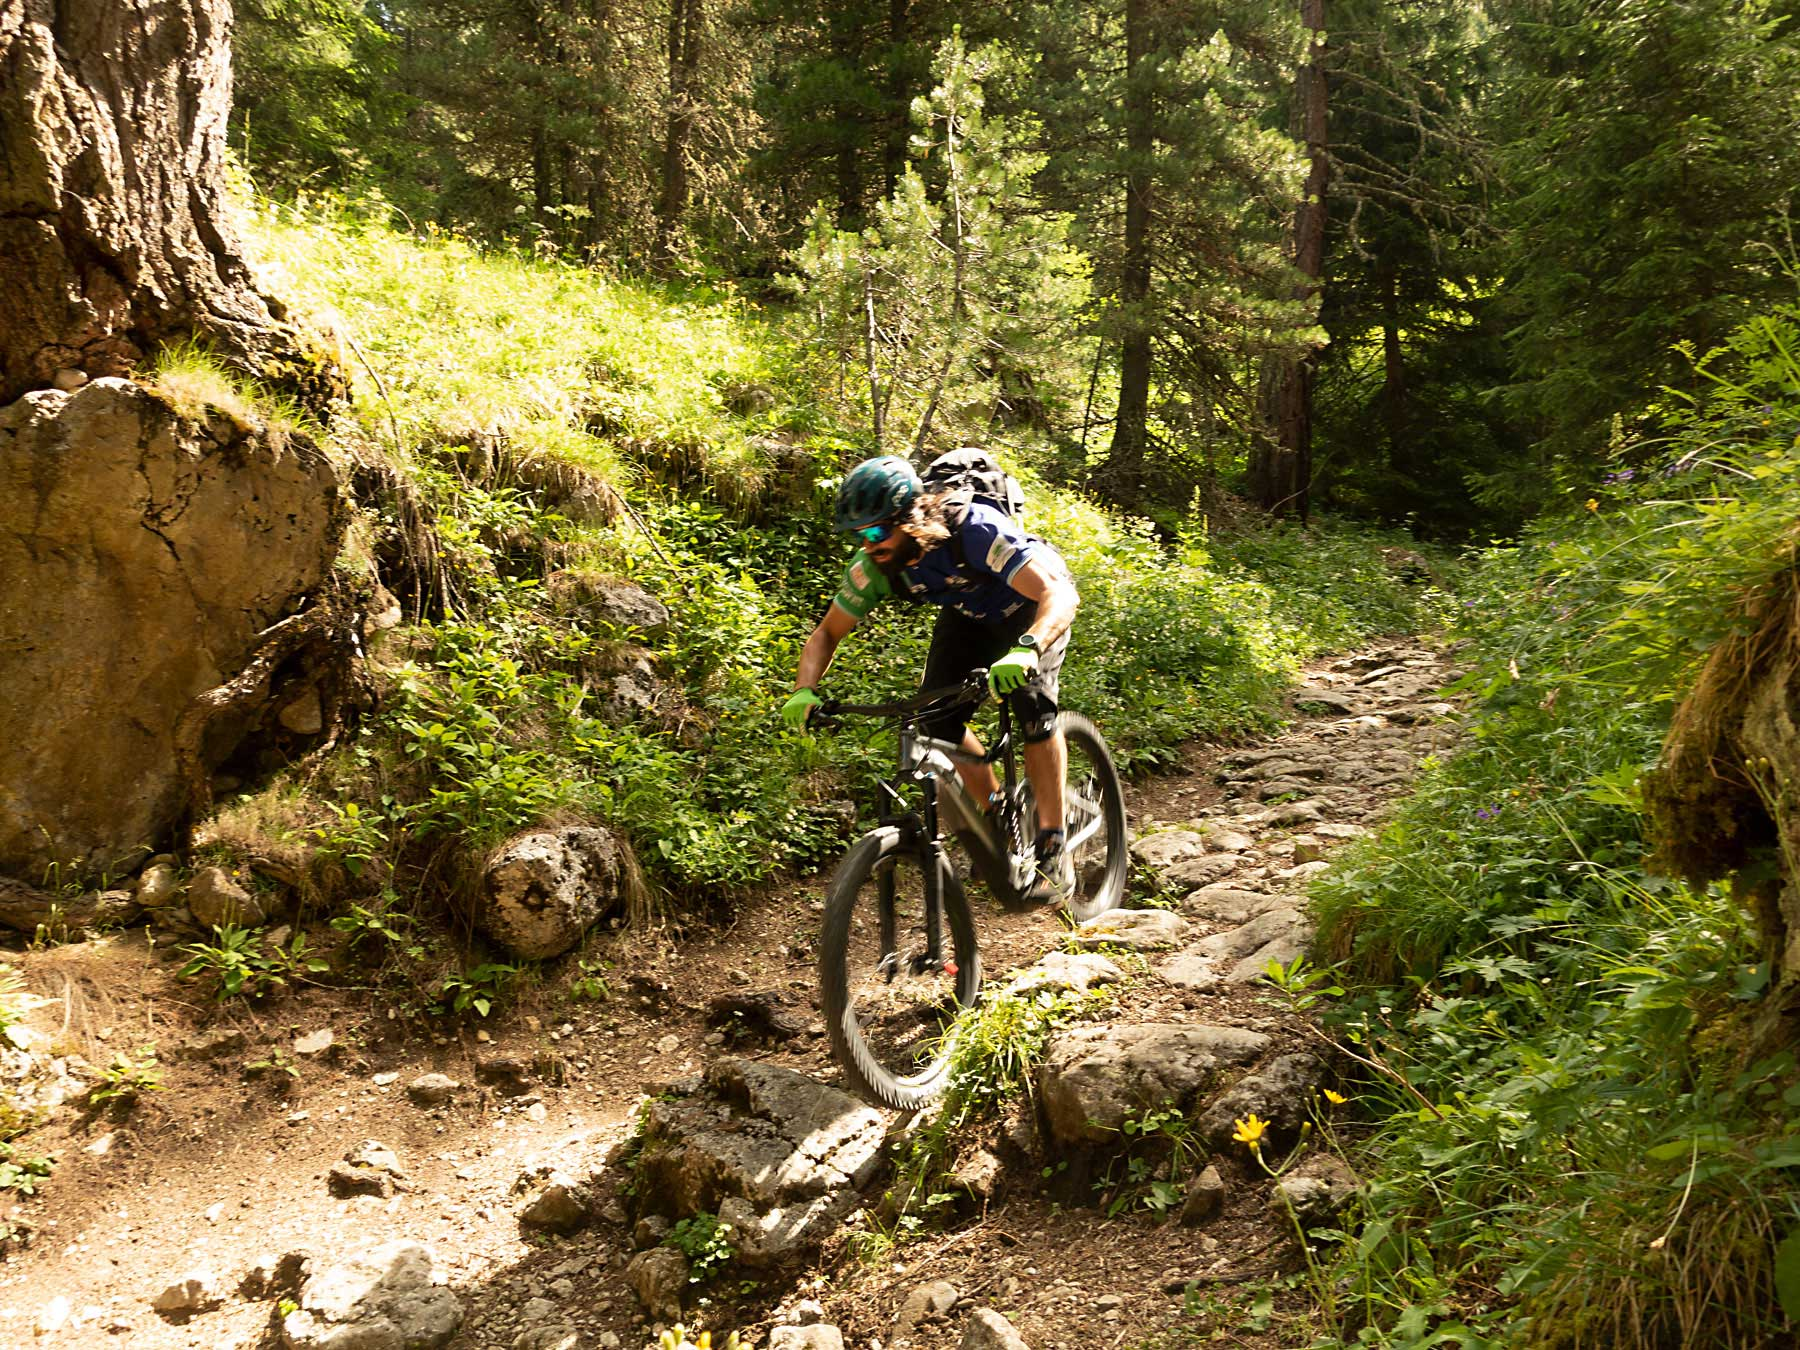 Mtb Trail nel bosco - Sellaronda mtb toure